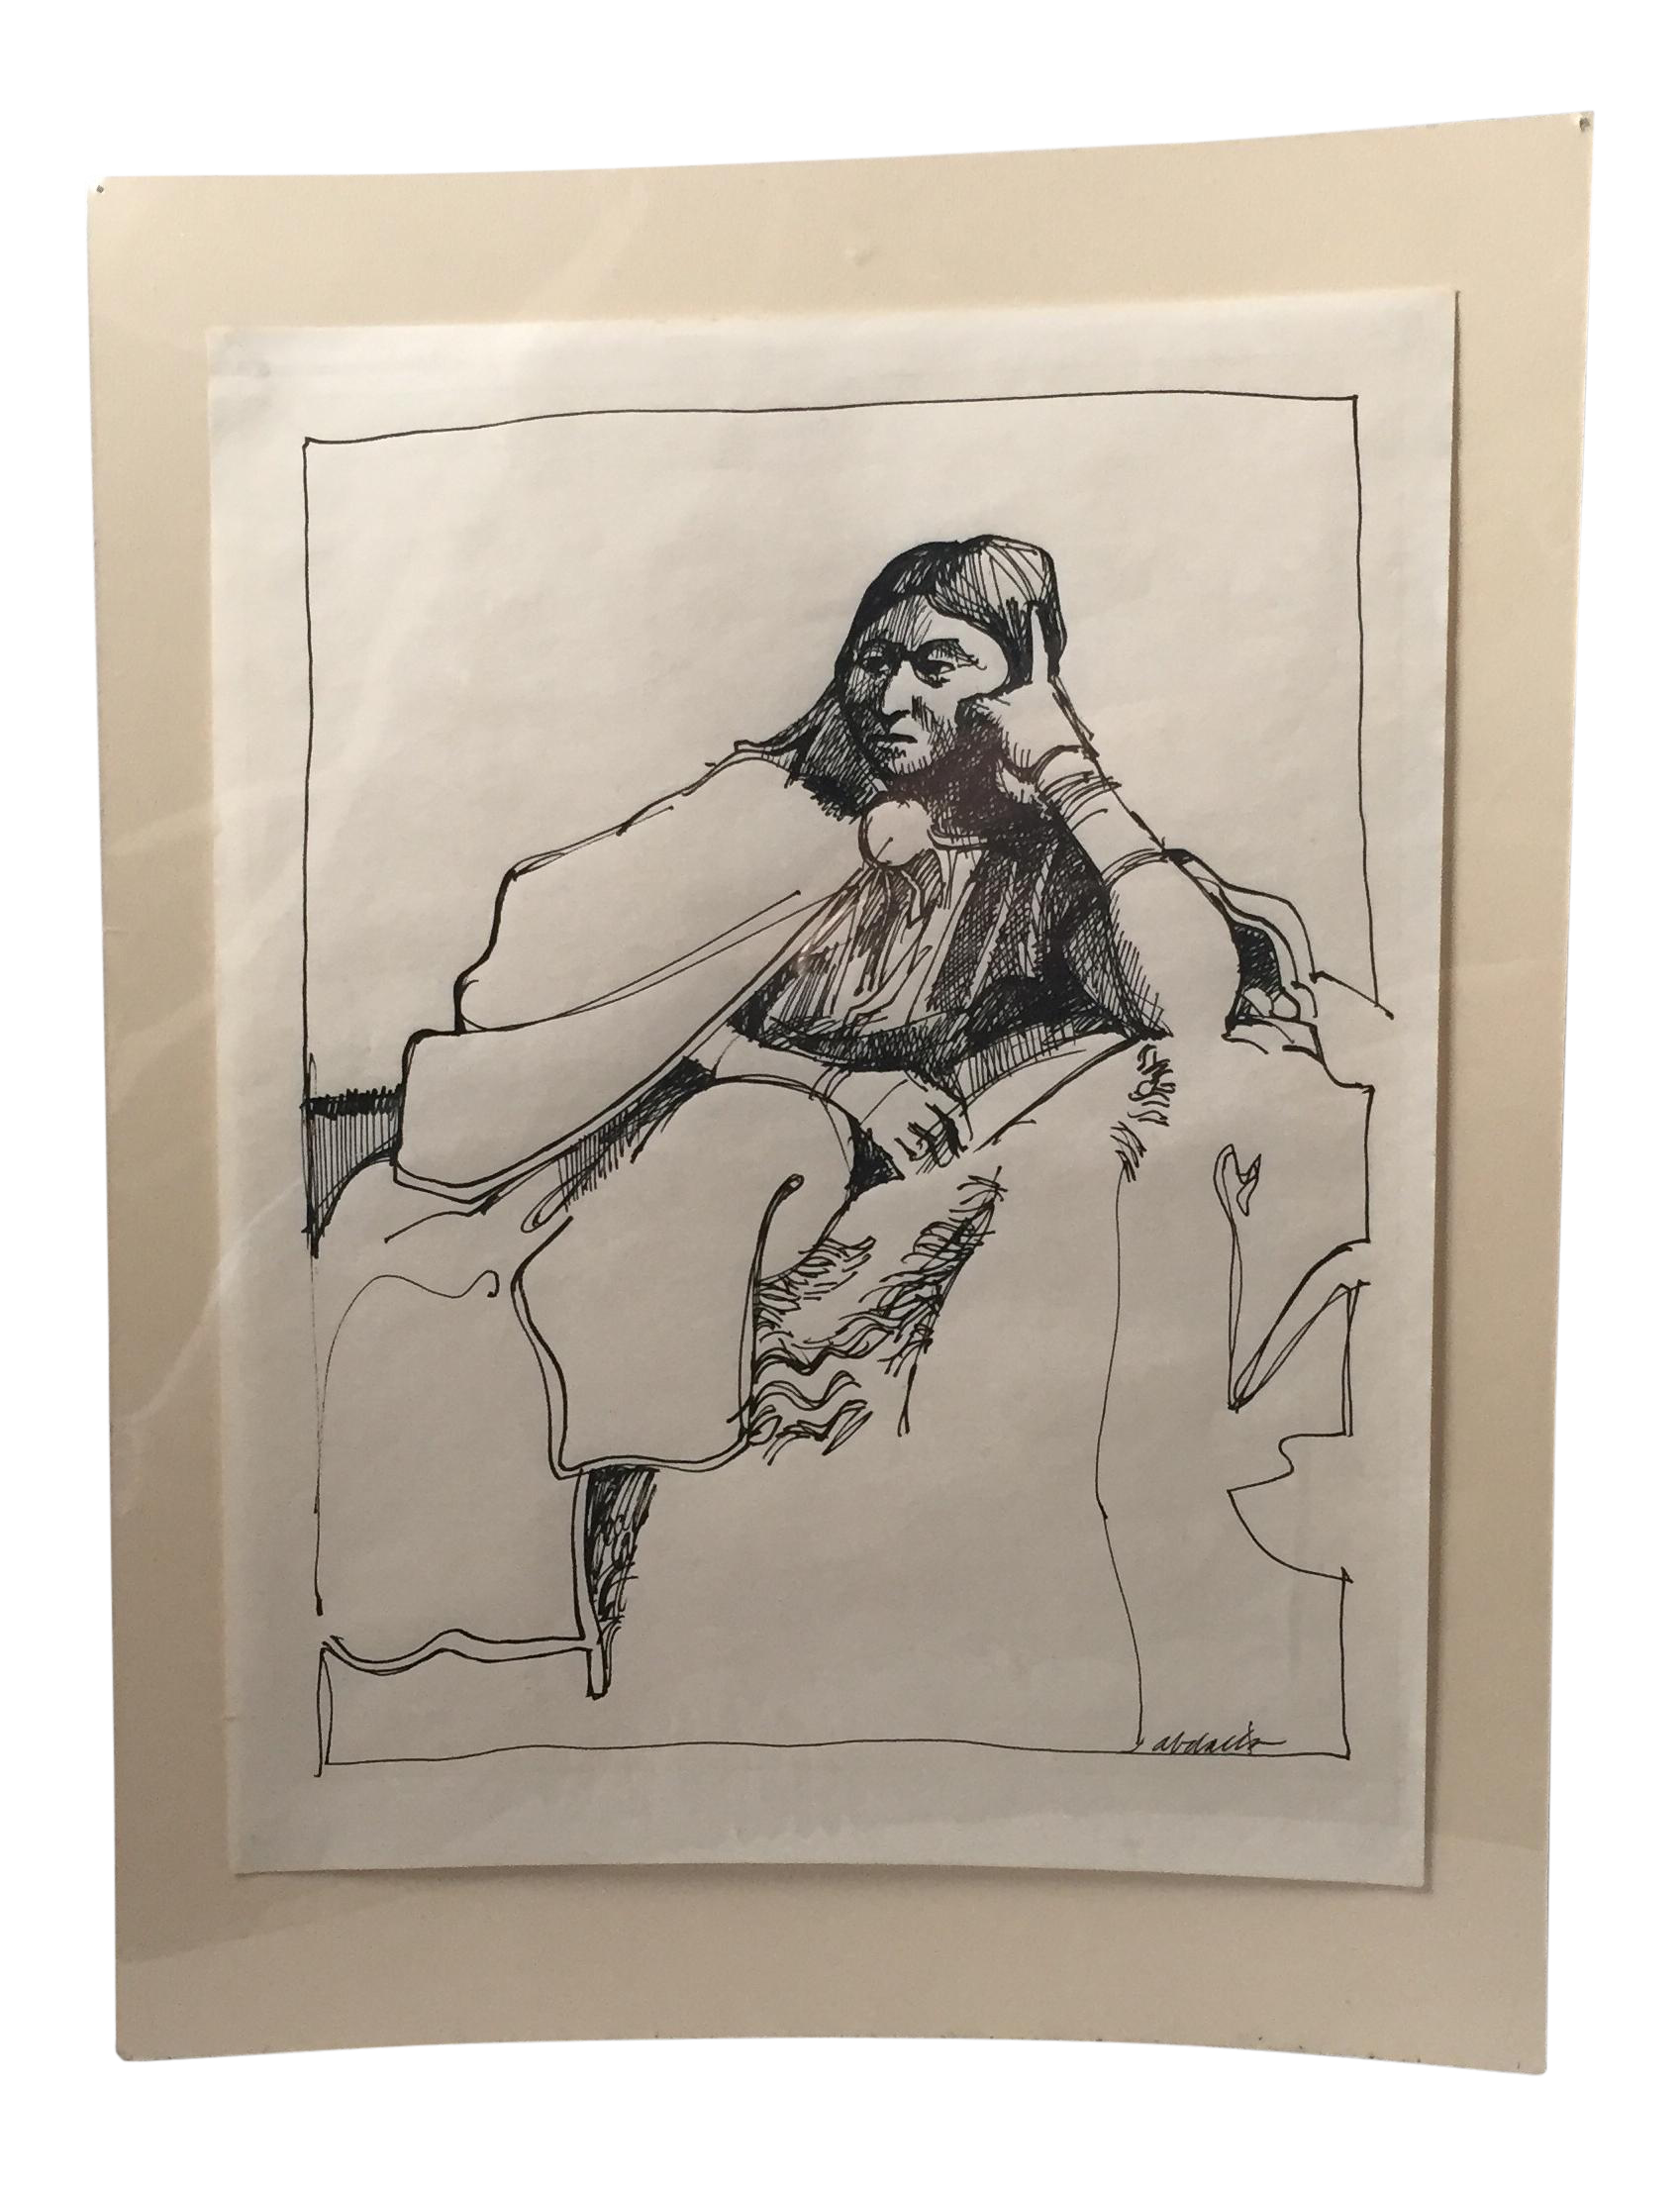 Venice drawing pen and ink. Sitting woman chairish